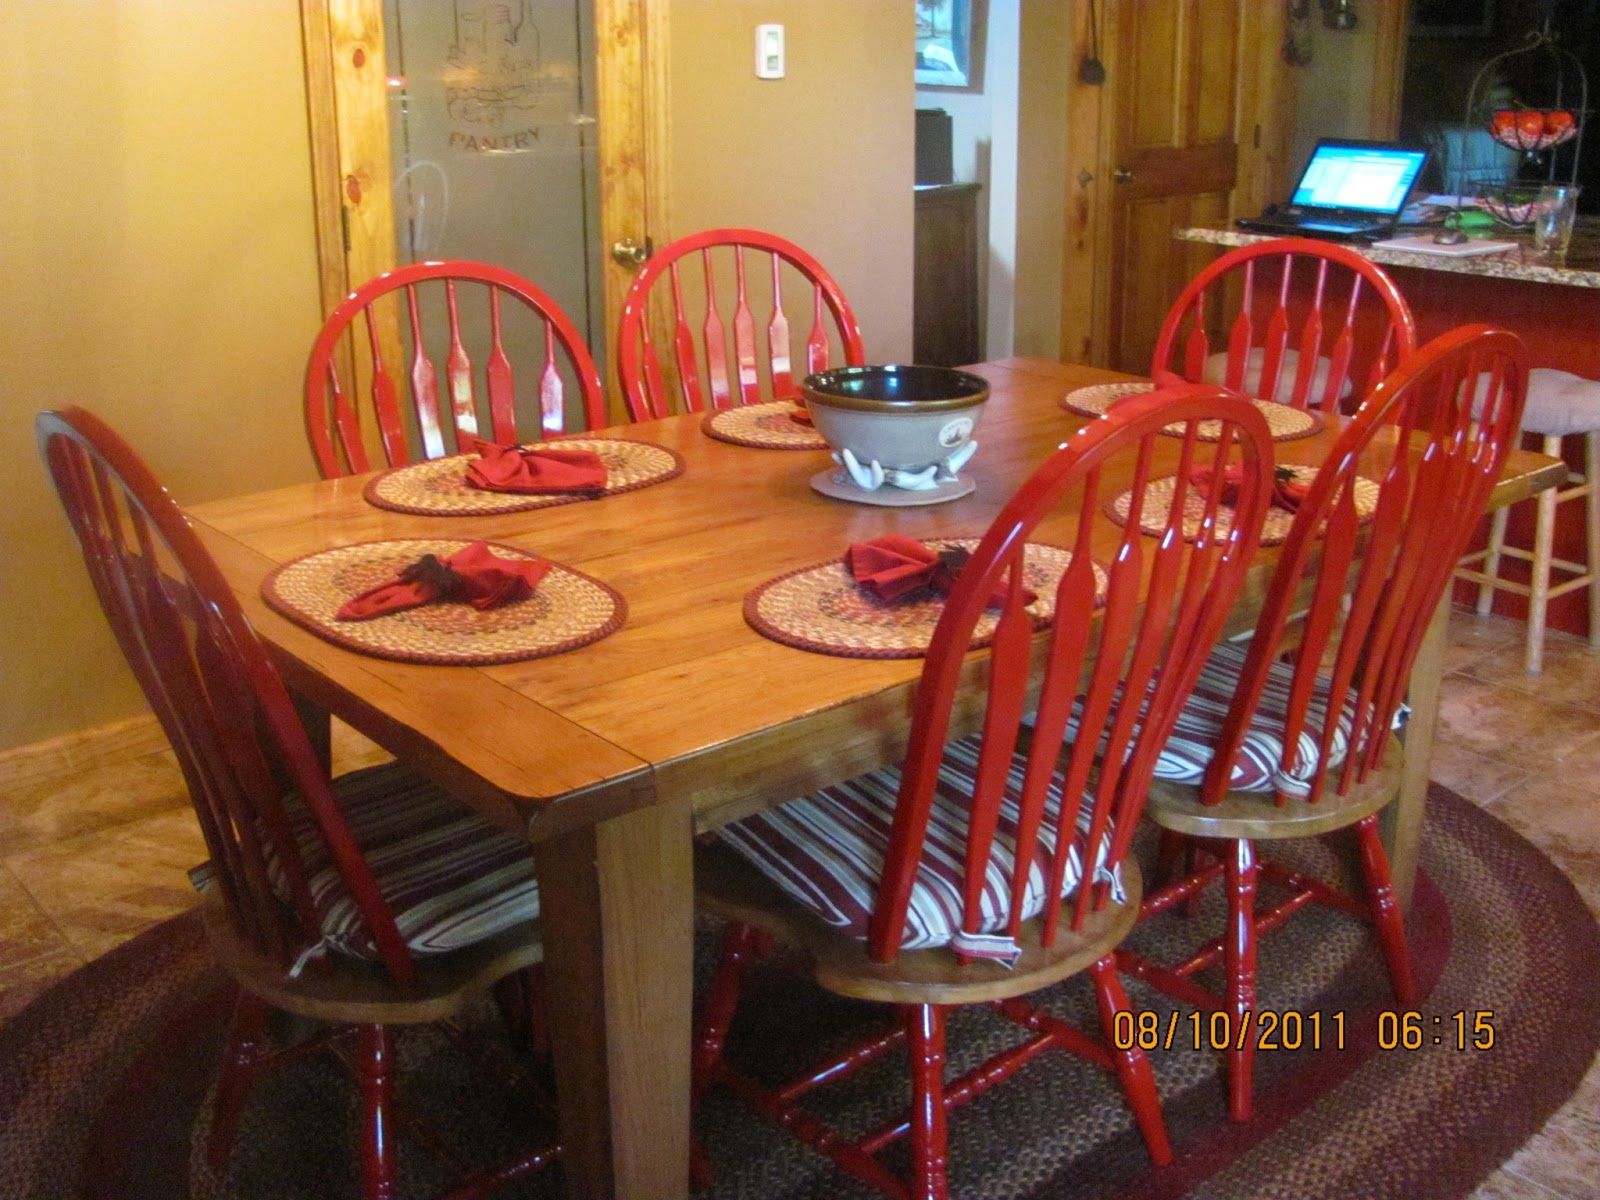 Painted Kitchen Chairs Of Living The Log Home Dream Newly Painted Kitchen Chairs